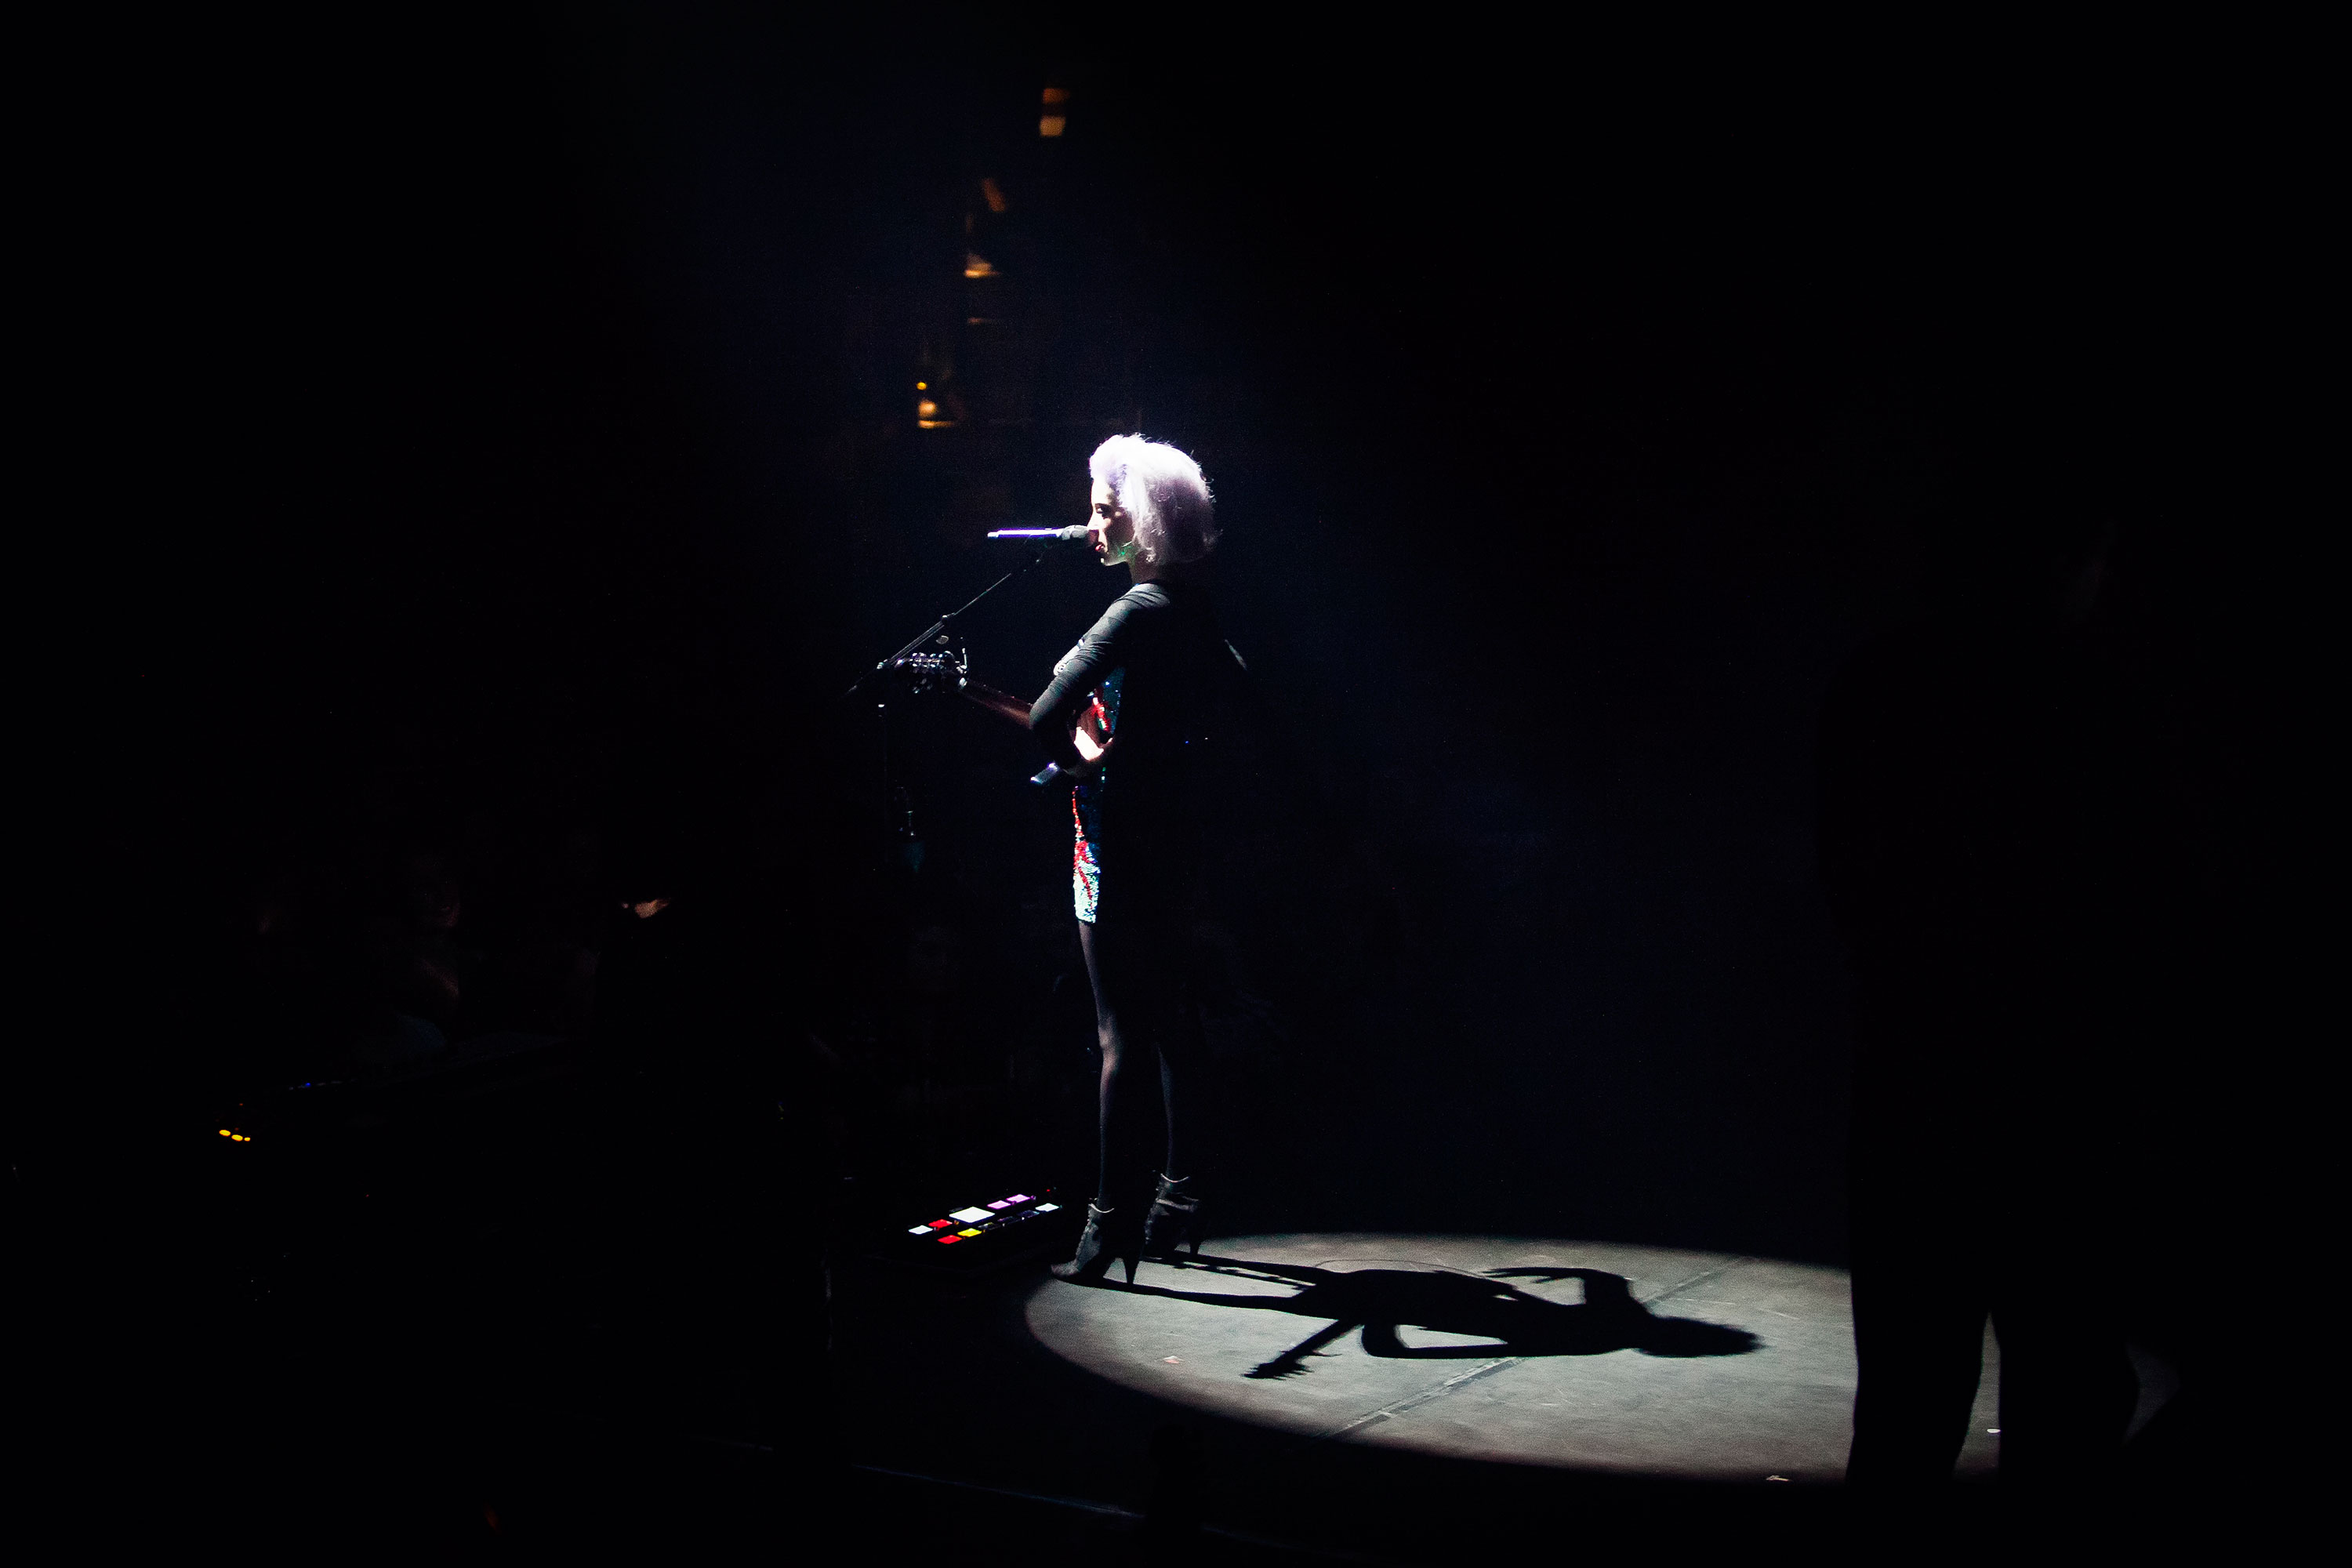 St. Vincent @ Le Guess Who? 2014 door Juri Hiensch